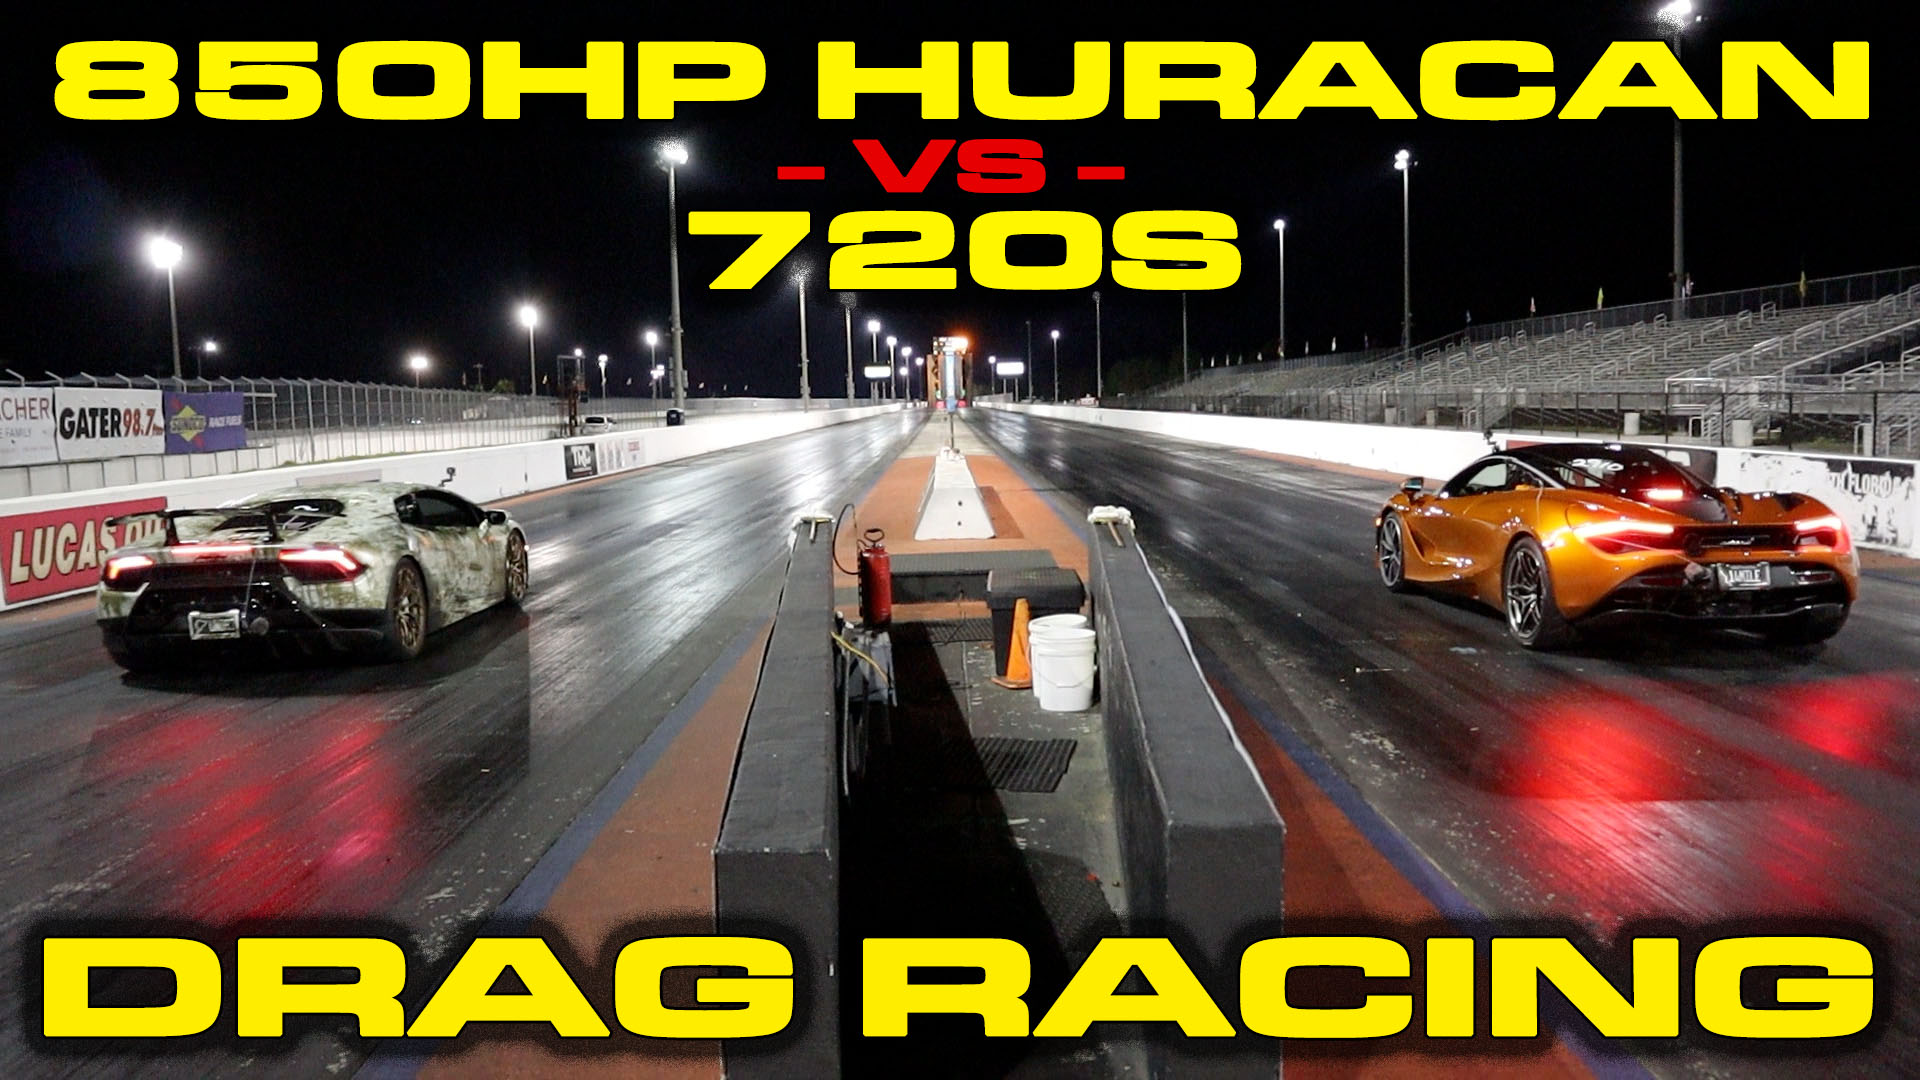 McLaren 720S vs 850HP Supercharged Lamborghini Huracan Performante 1/4 Mile Drag Racing